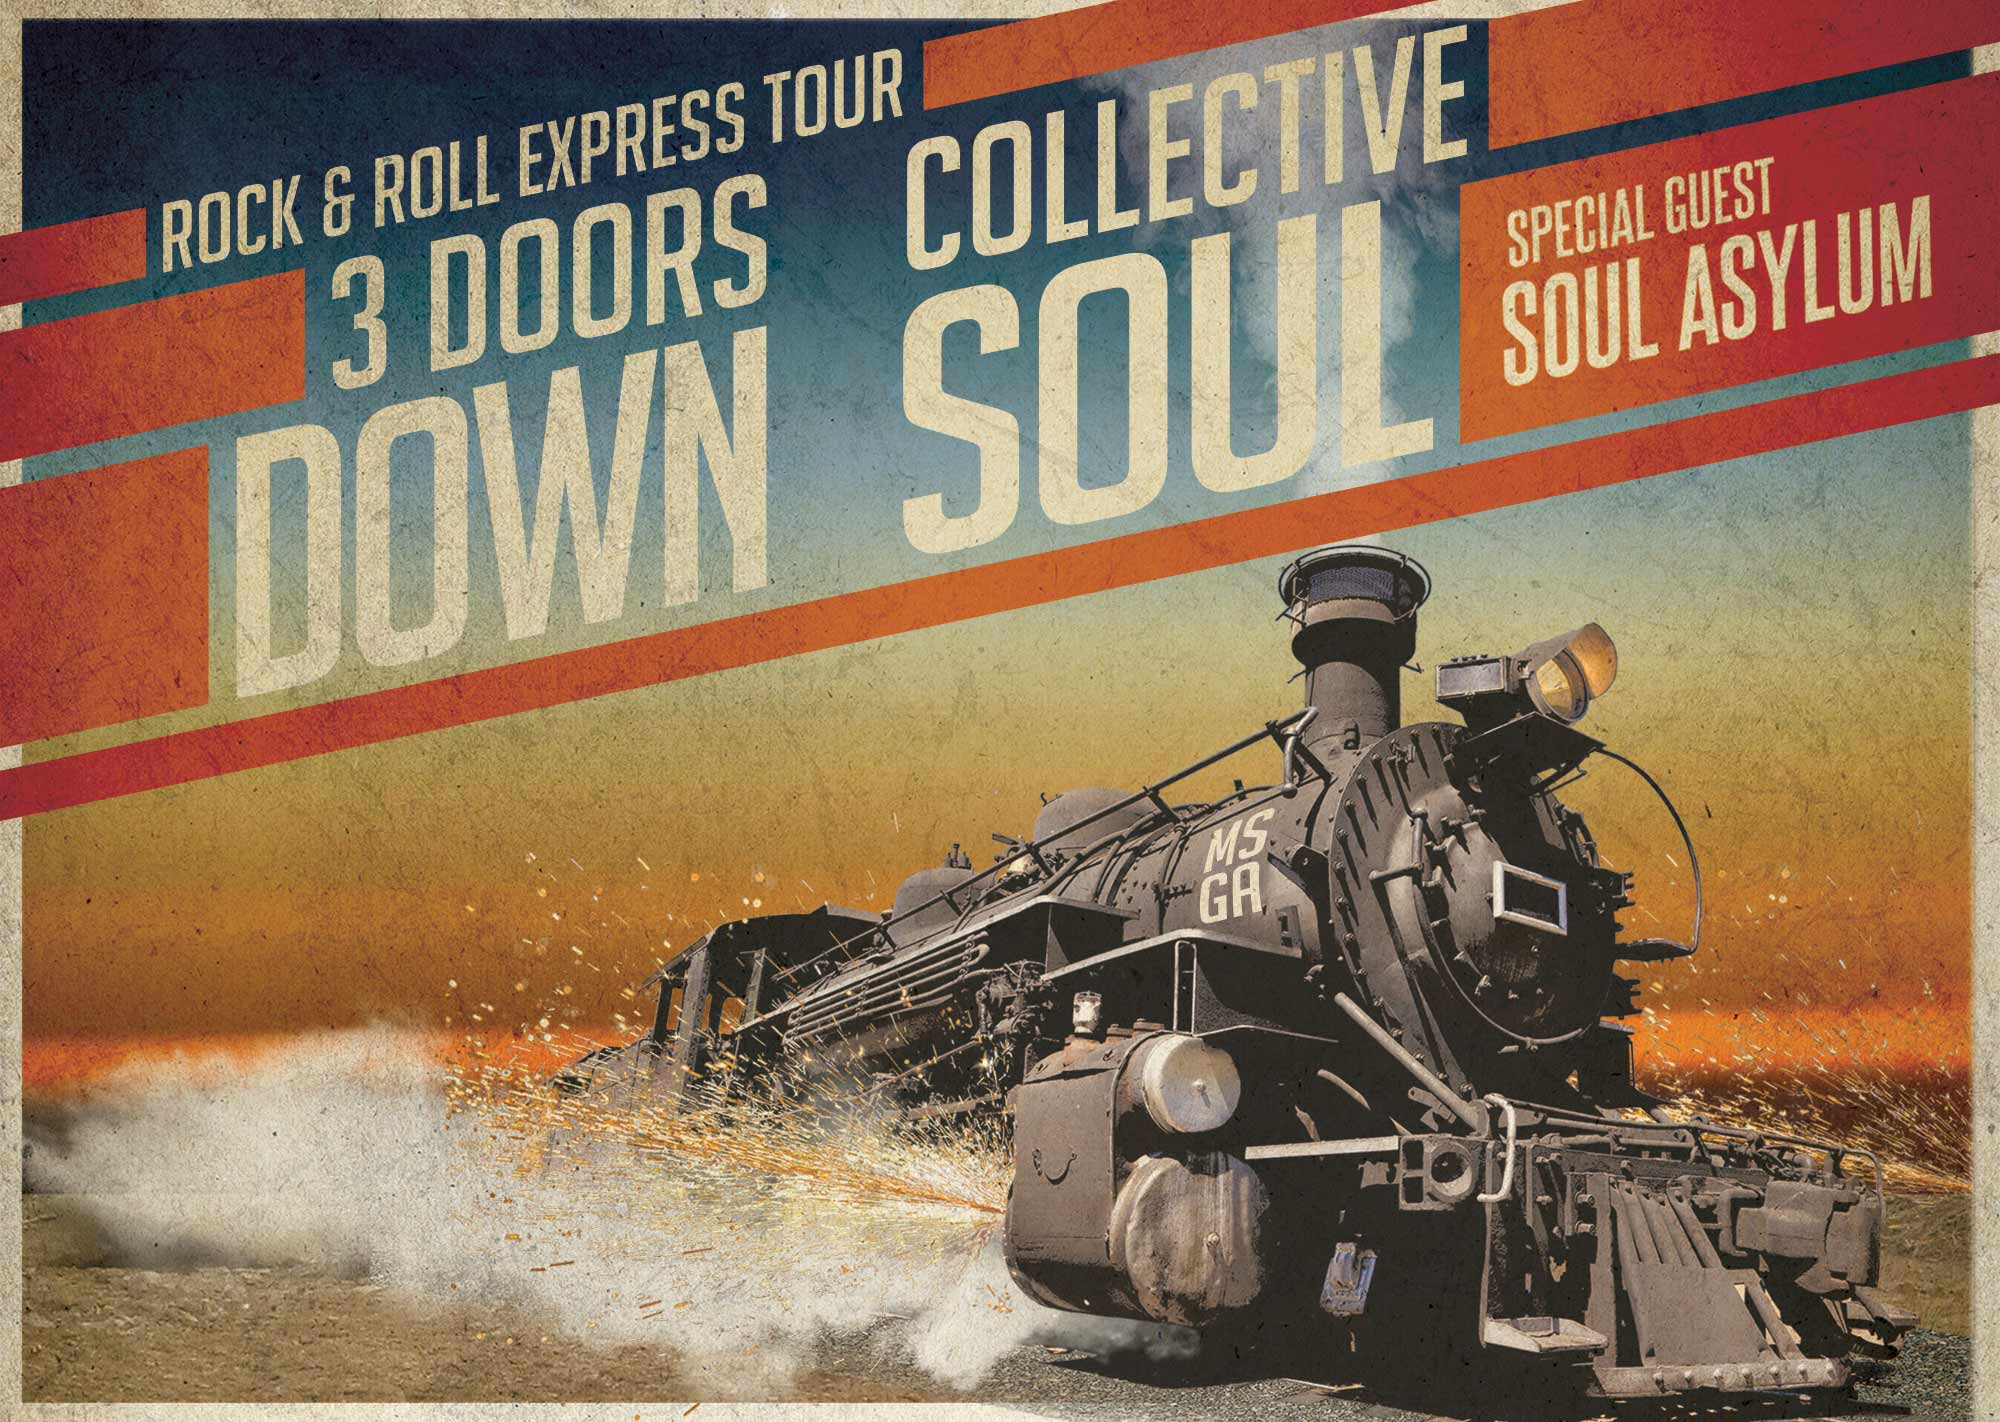 3 Doors Down Announces Back Porch Jam Tour An Acoustic Excursion & 3 Doors Down Tour - Photos Wall and Door Tinfishclematis.Com